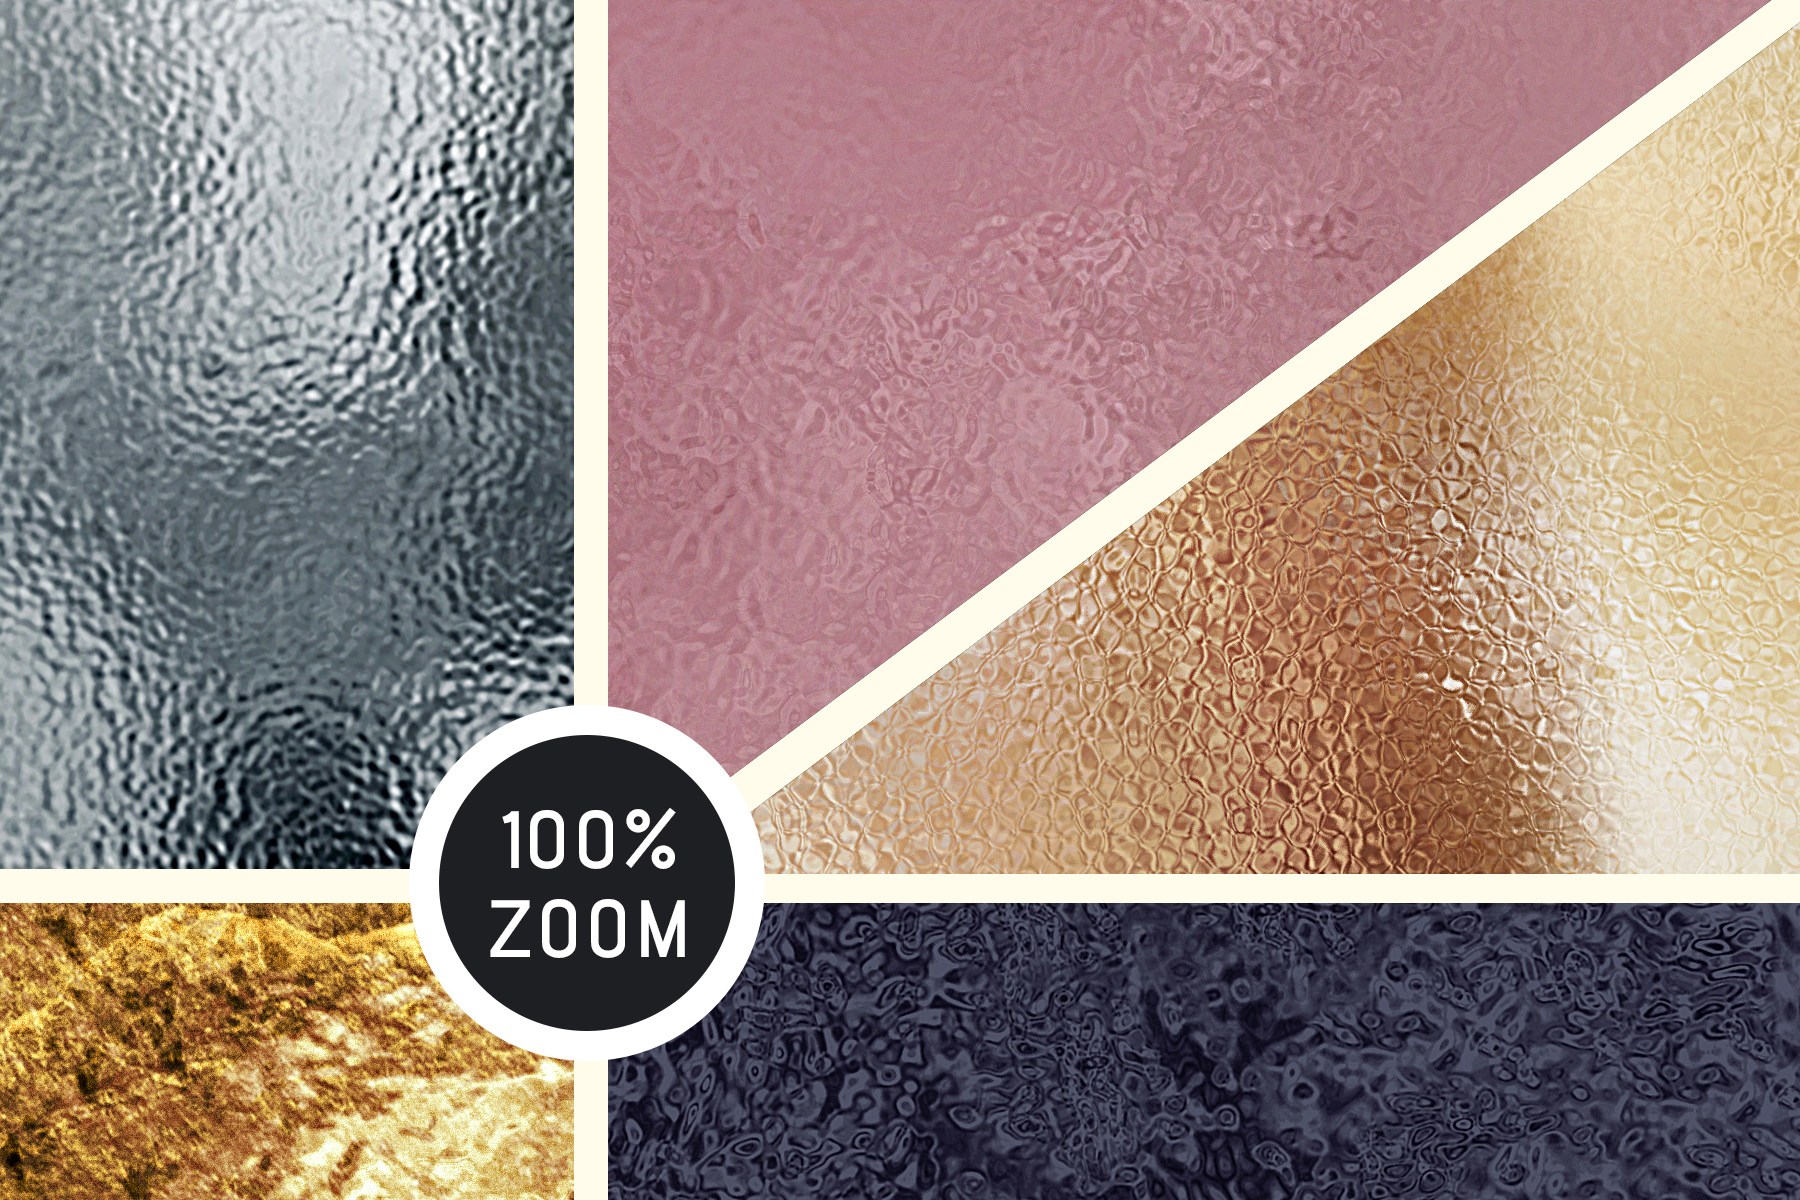 Luxe - 200 Textures and Patterns - Foil, Glitter, Marble example image 17